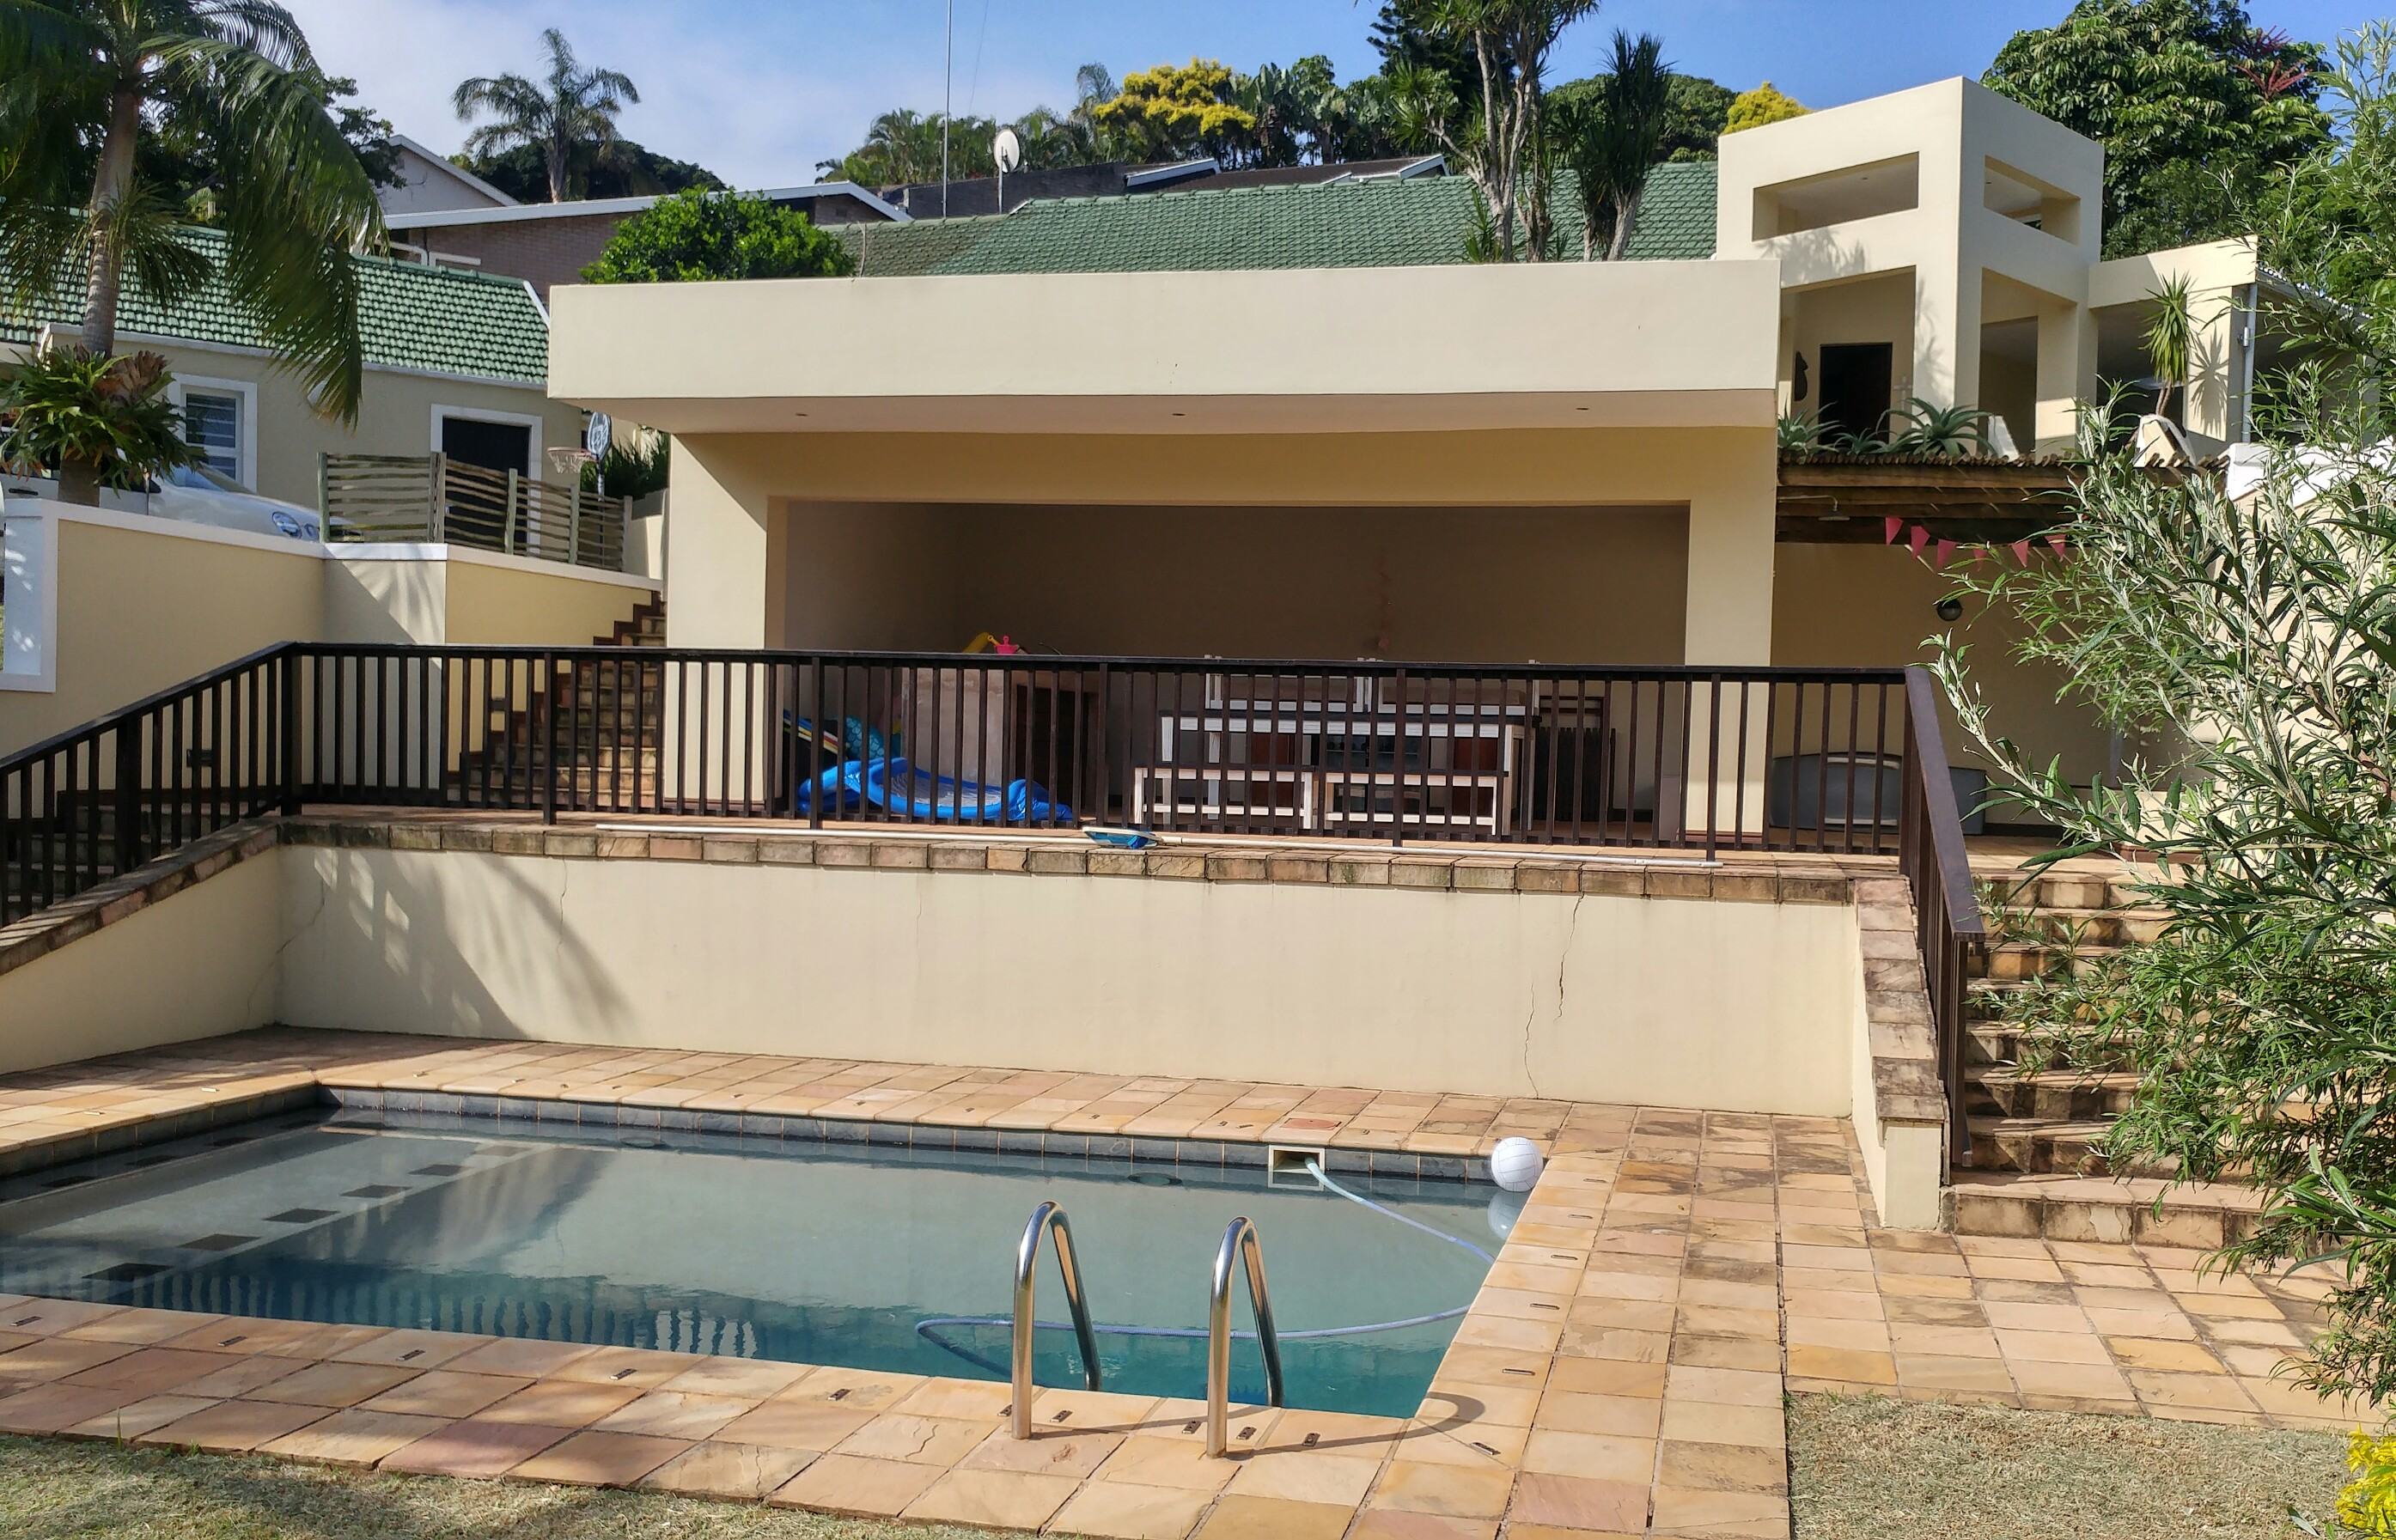 4 Bedroom Freestanding House For Sale in La Lucia